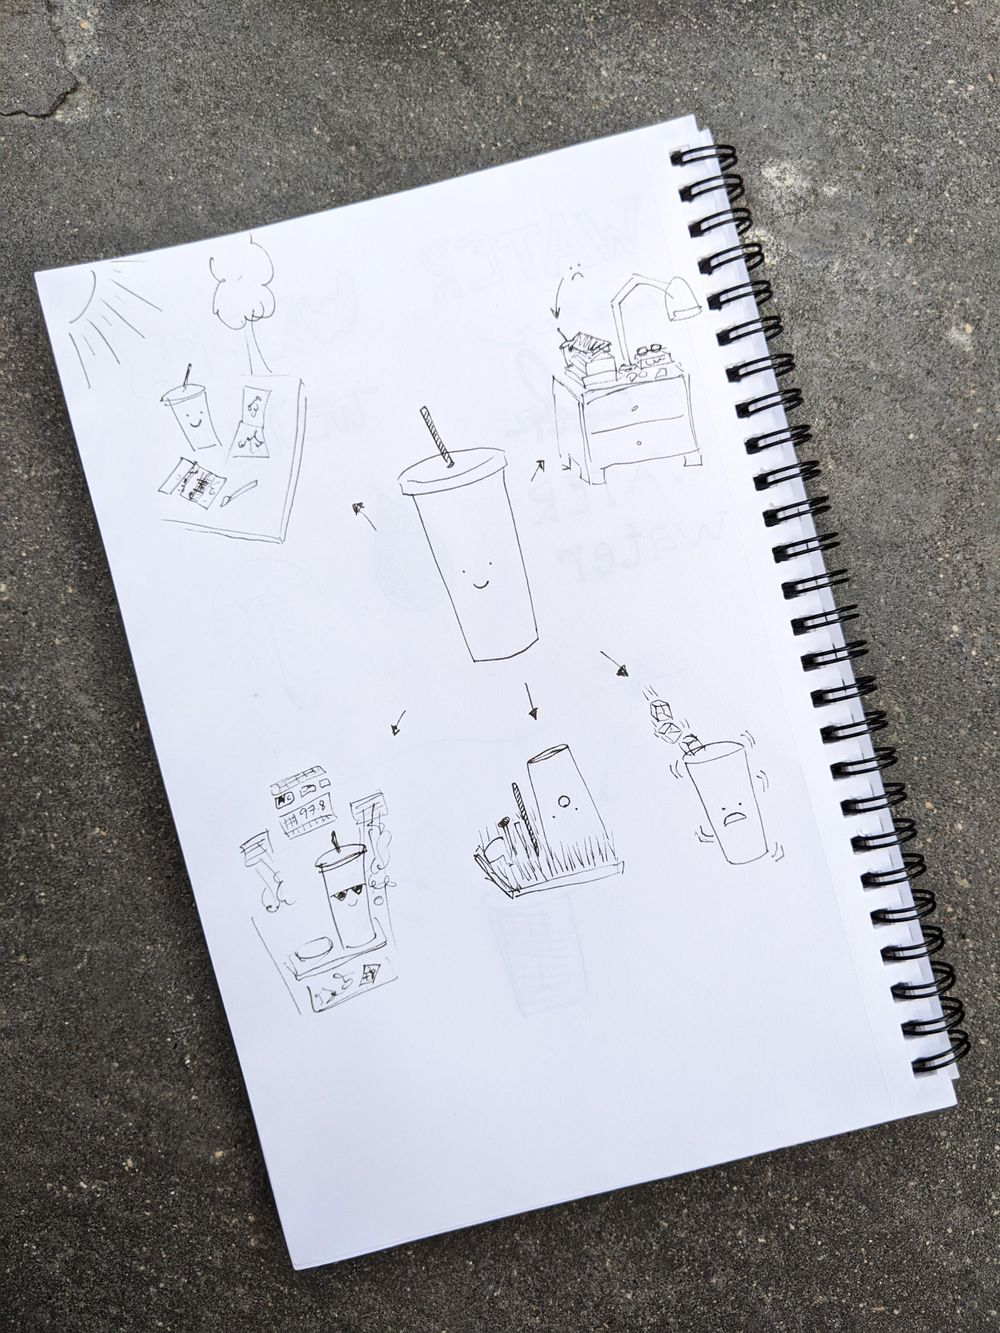 Water Cup Doodles - image 1 - student project